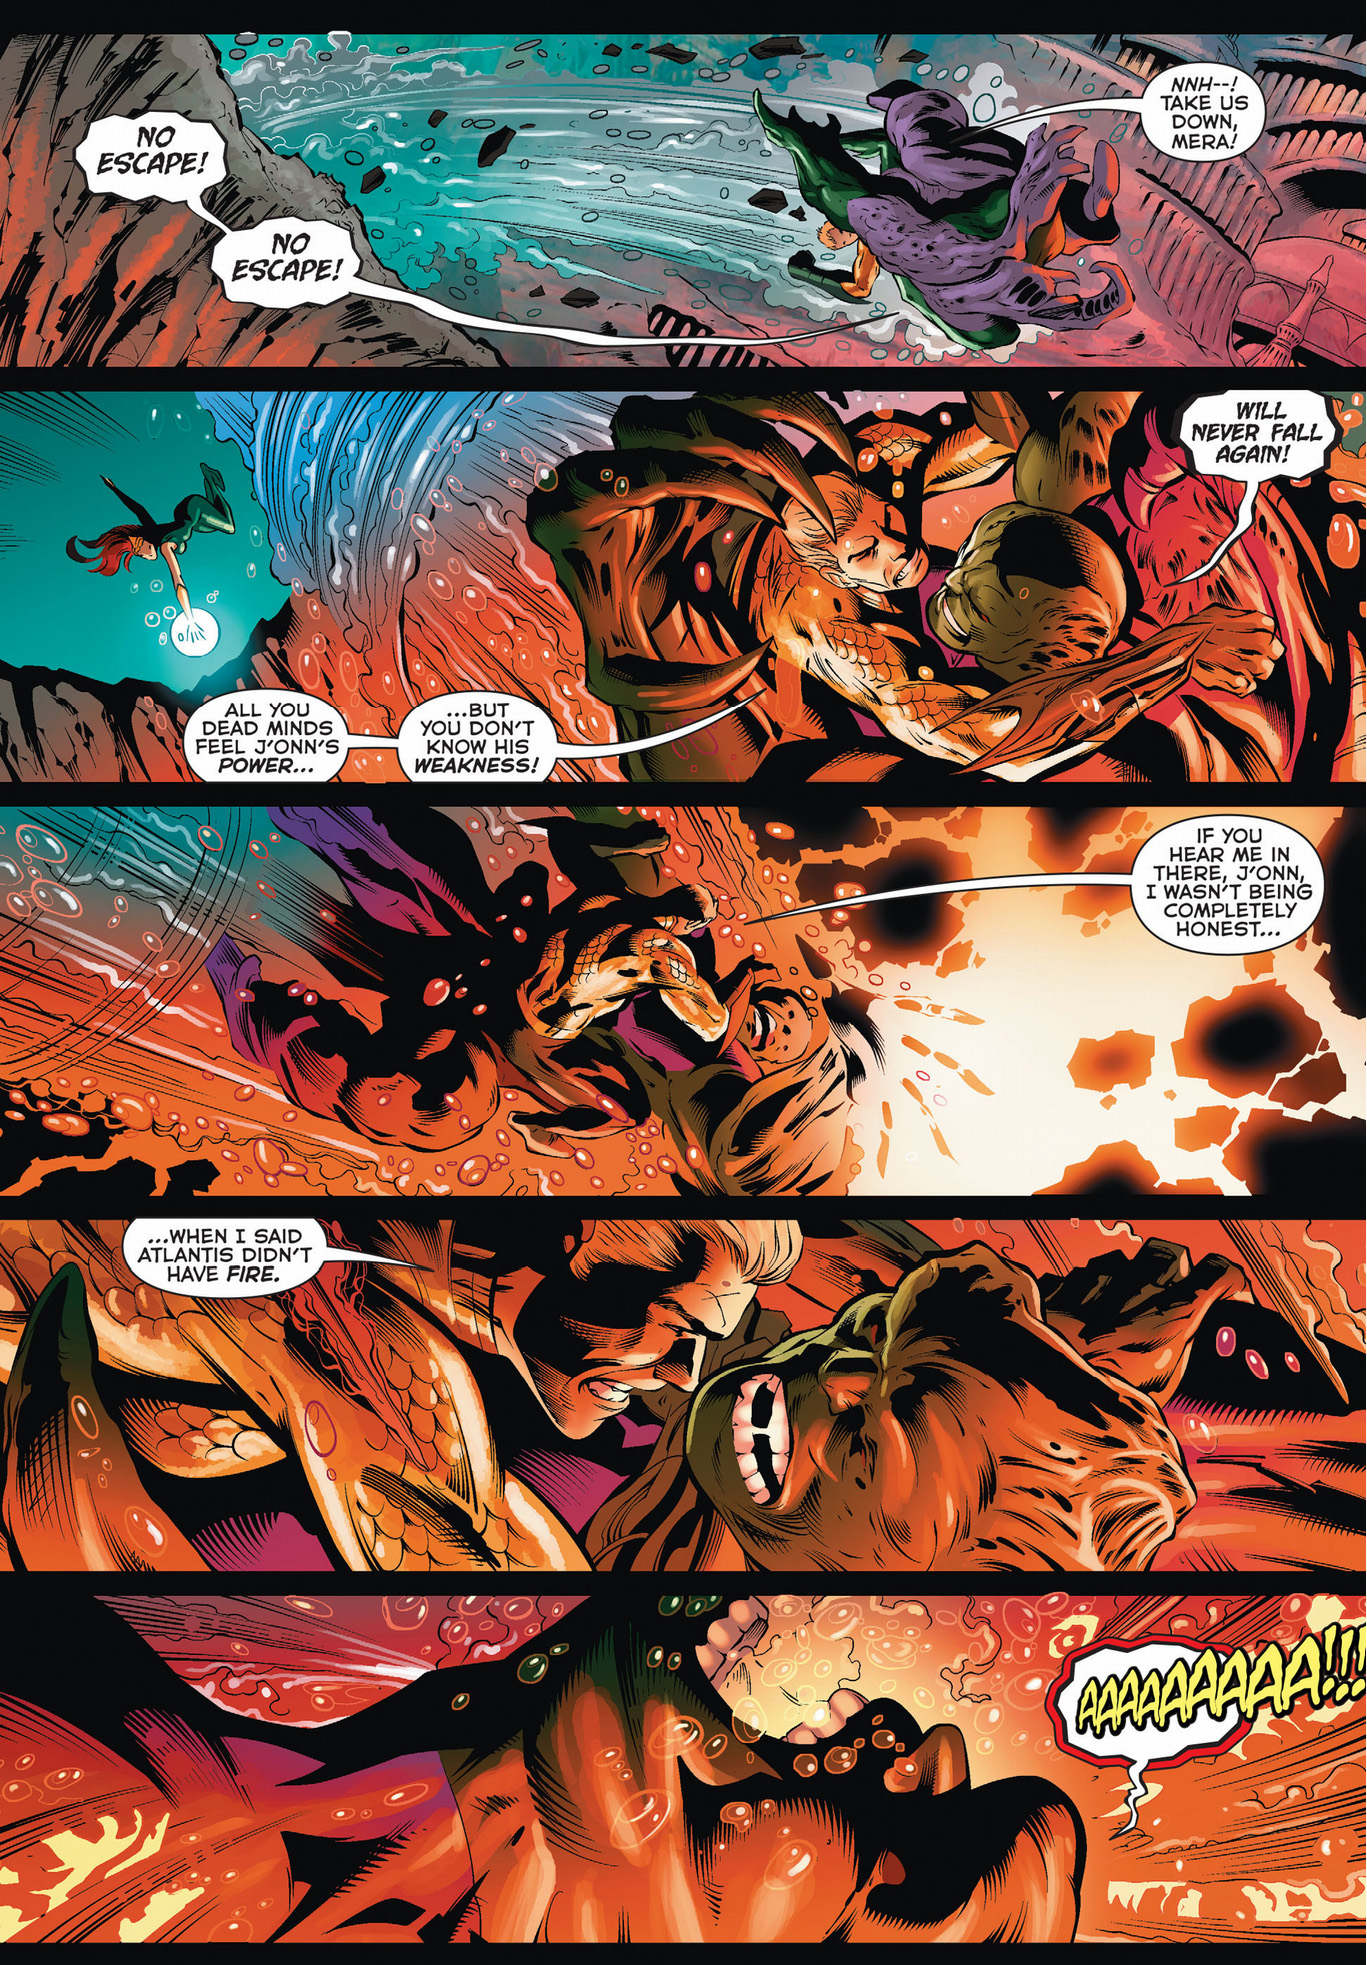 aquaman and mera tries to subdue martian manhunter